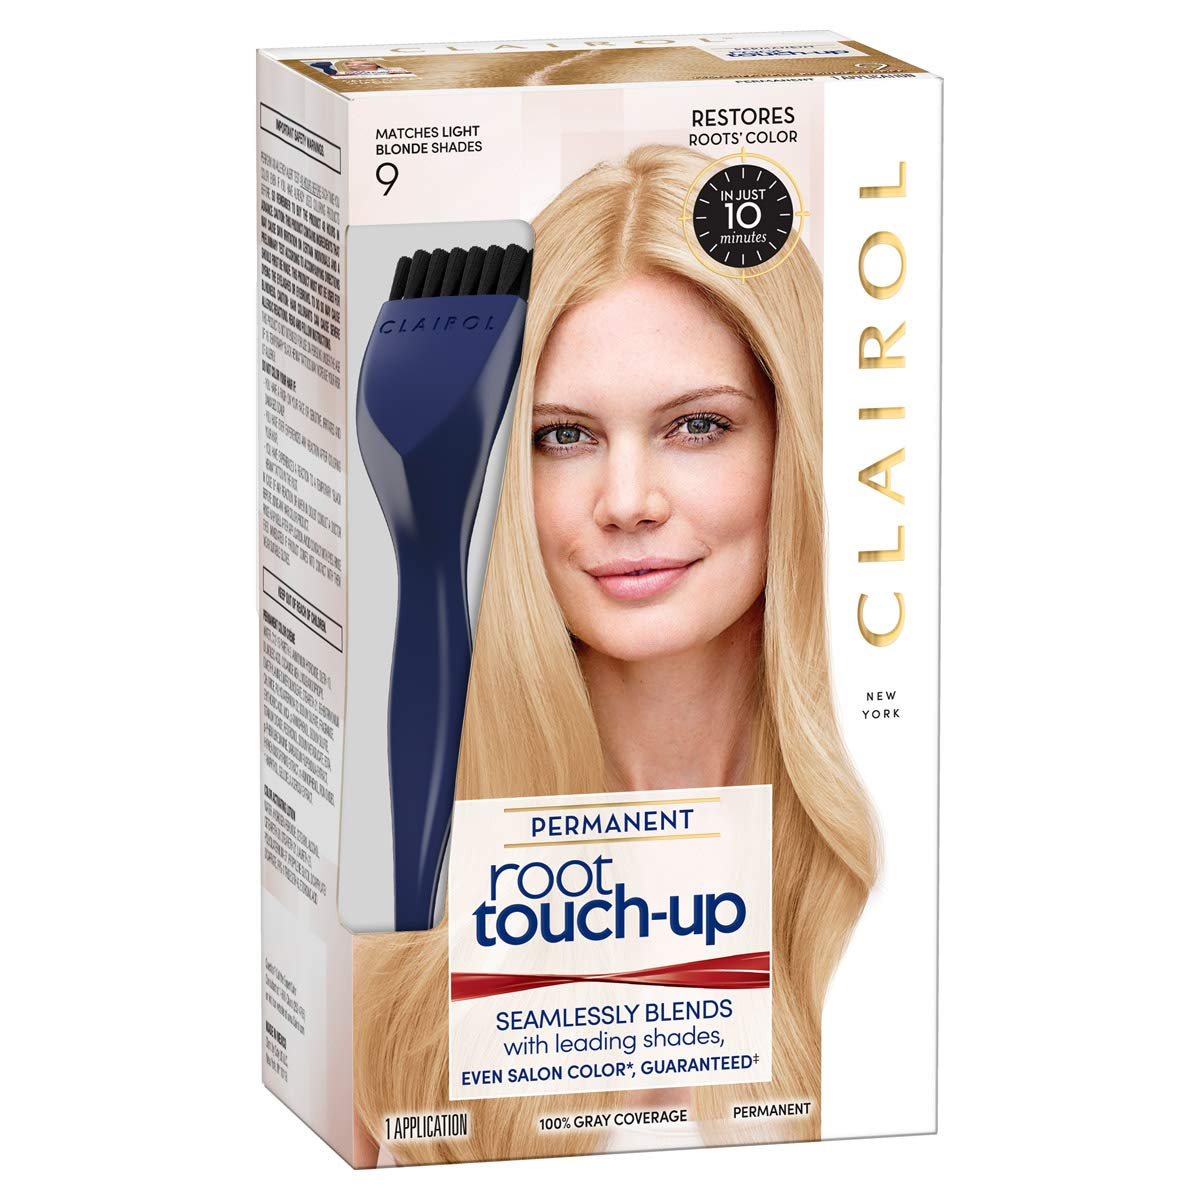 fb116f9ea5 Amazon.com: Clairol Nice 'N Easy Permanent Hair Color Root Touch-Up Kit, 9  Matches Light Blonde Shades (Pack of 2) (Packaging May Vary): Beauty